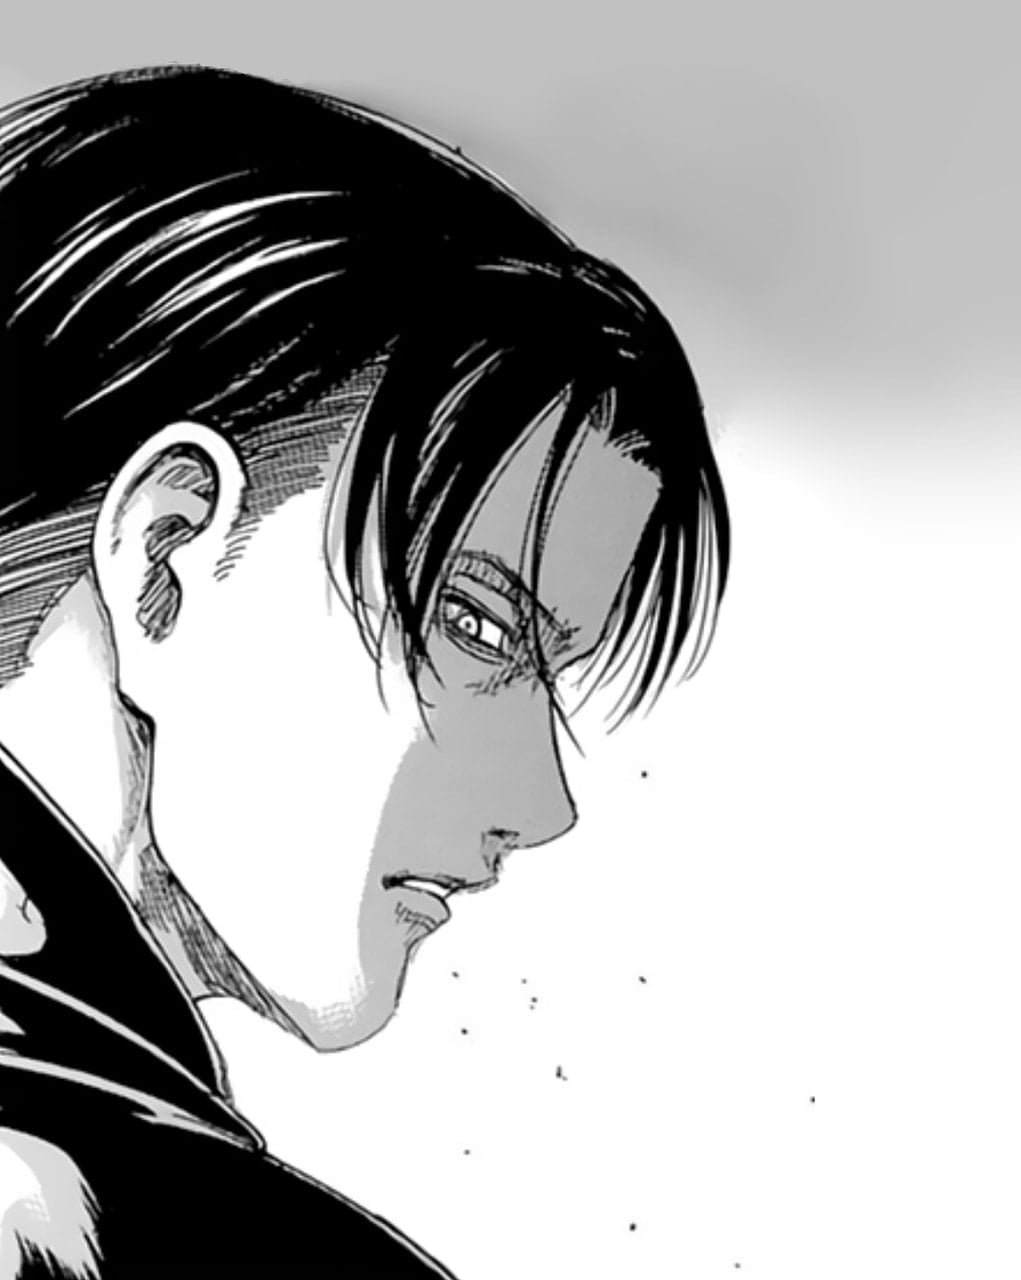 Image About Hair In Shingeki No Kyojin By Á¹iŧuaŀ